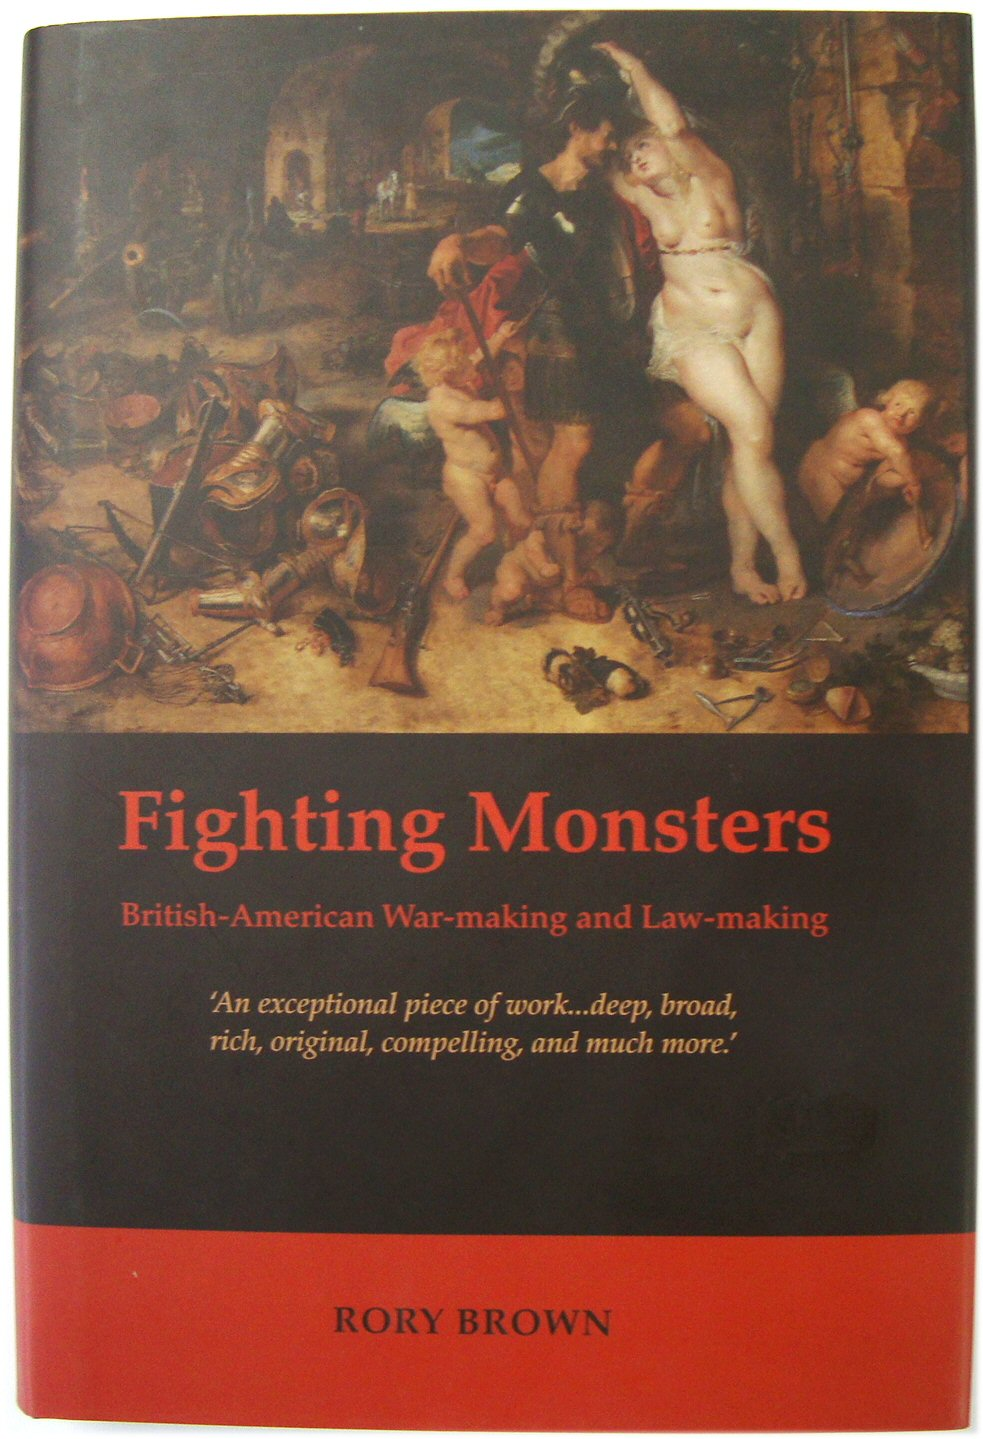 Image for Fighting Monsters: British-American War-making and Law-making